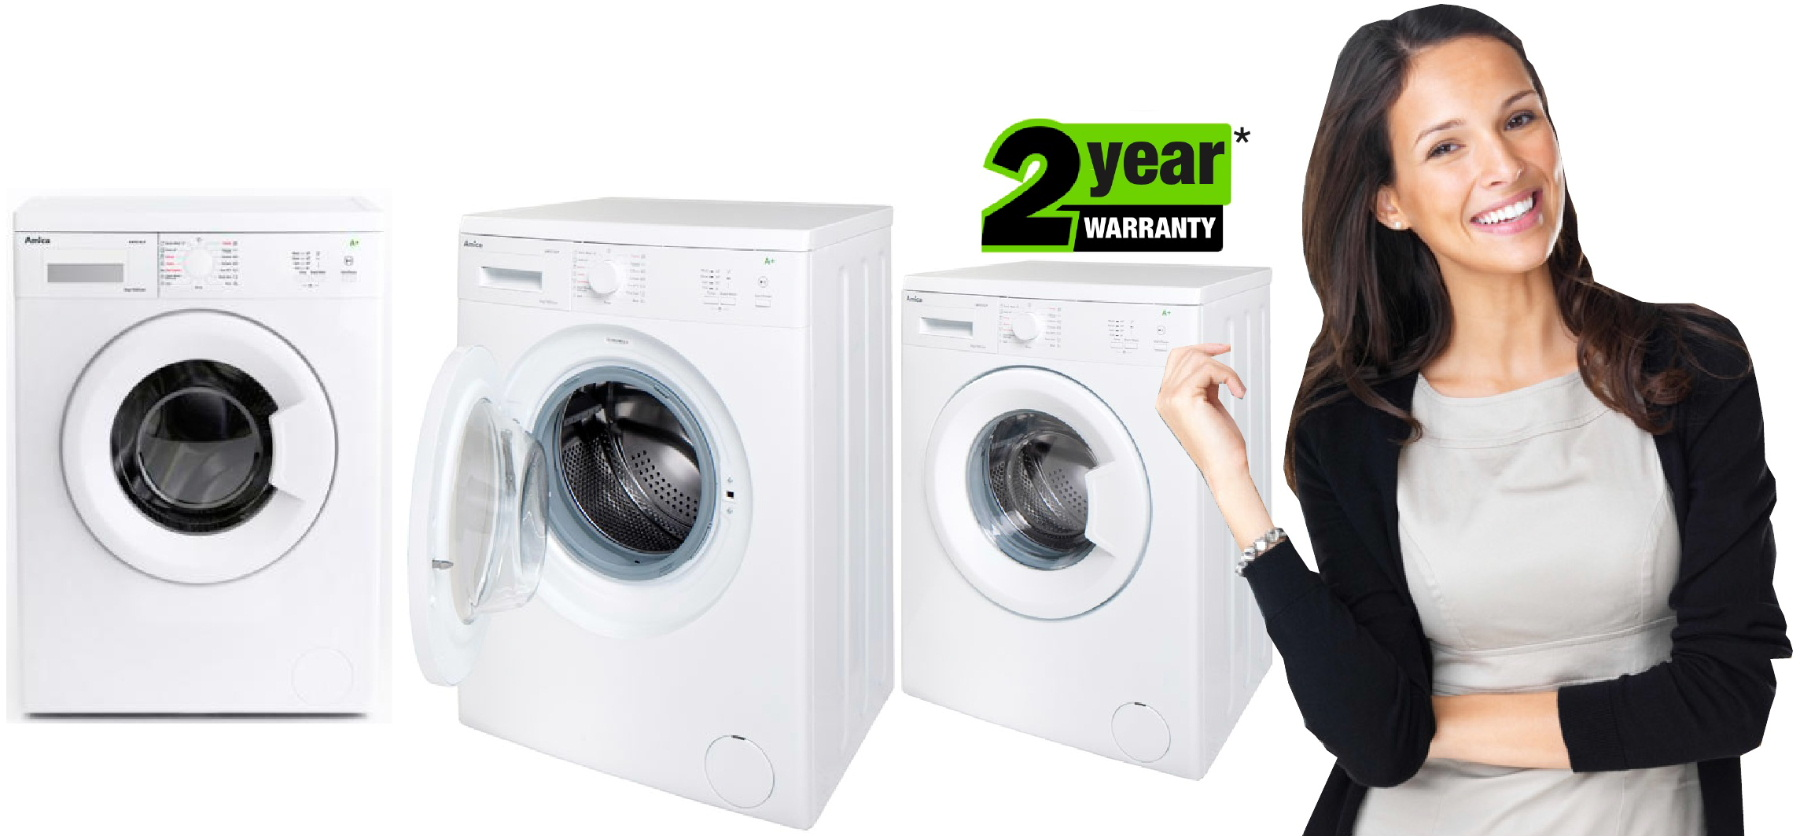 cheap washing machines Dalbeattie available from the Dalbeattie Appliance Centre